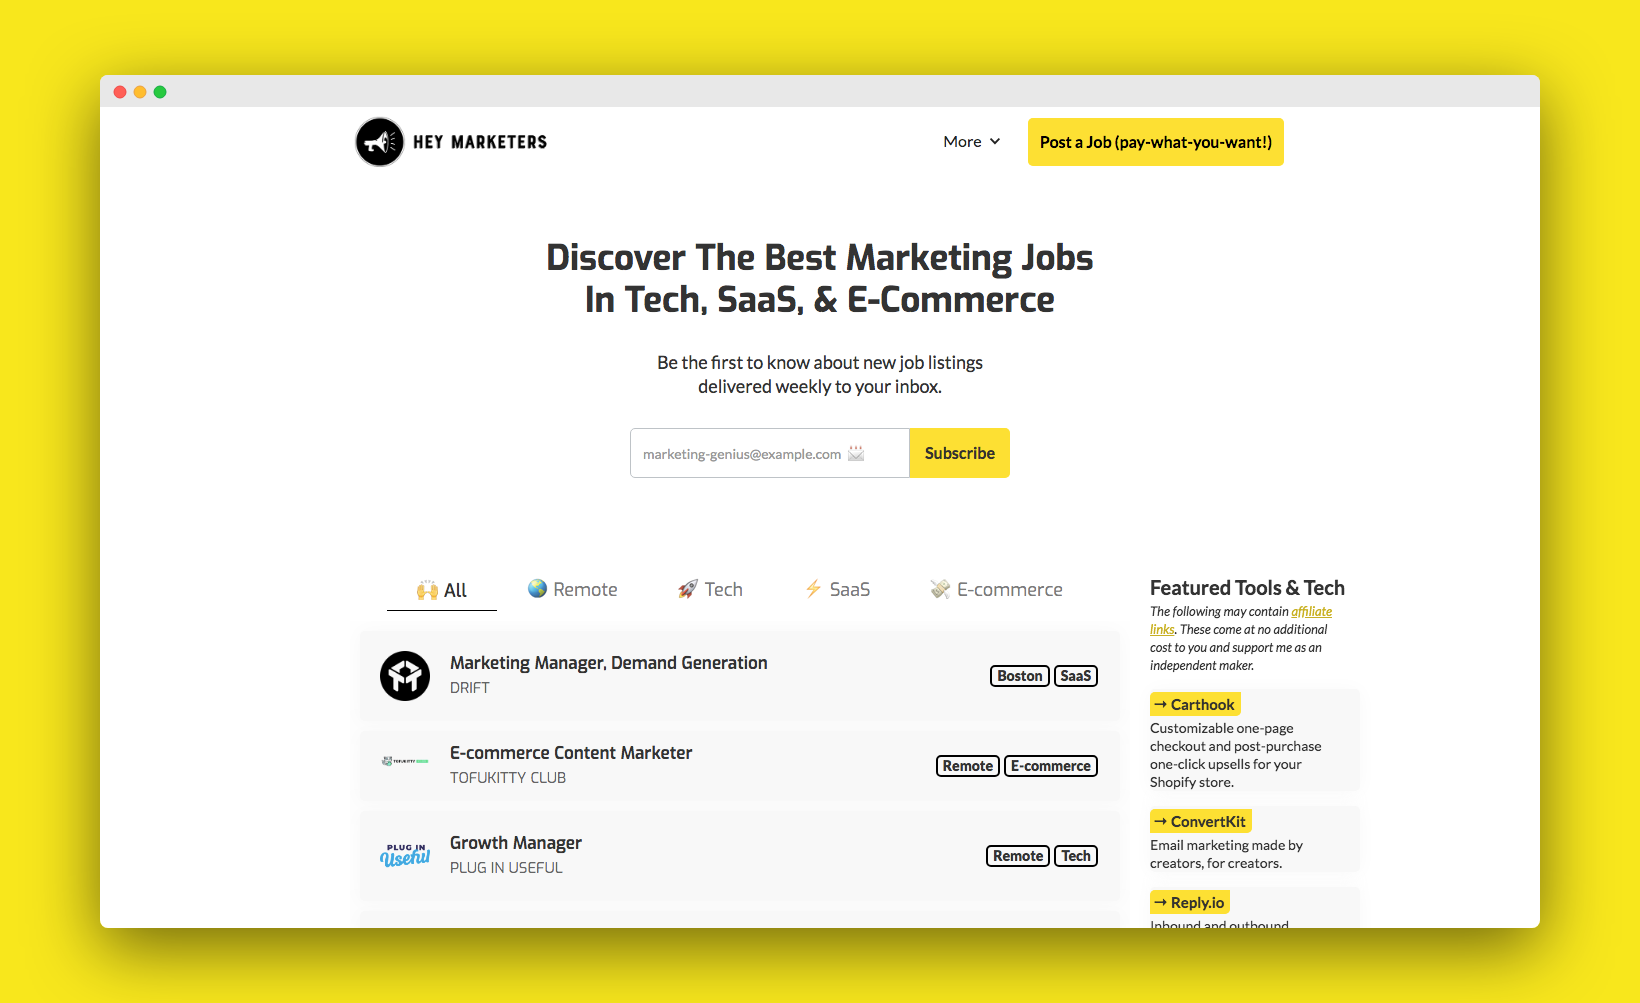 Discover The Best Marketing Jobs In Tech, SaaS, & E-Commerce